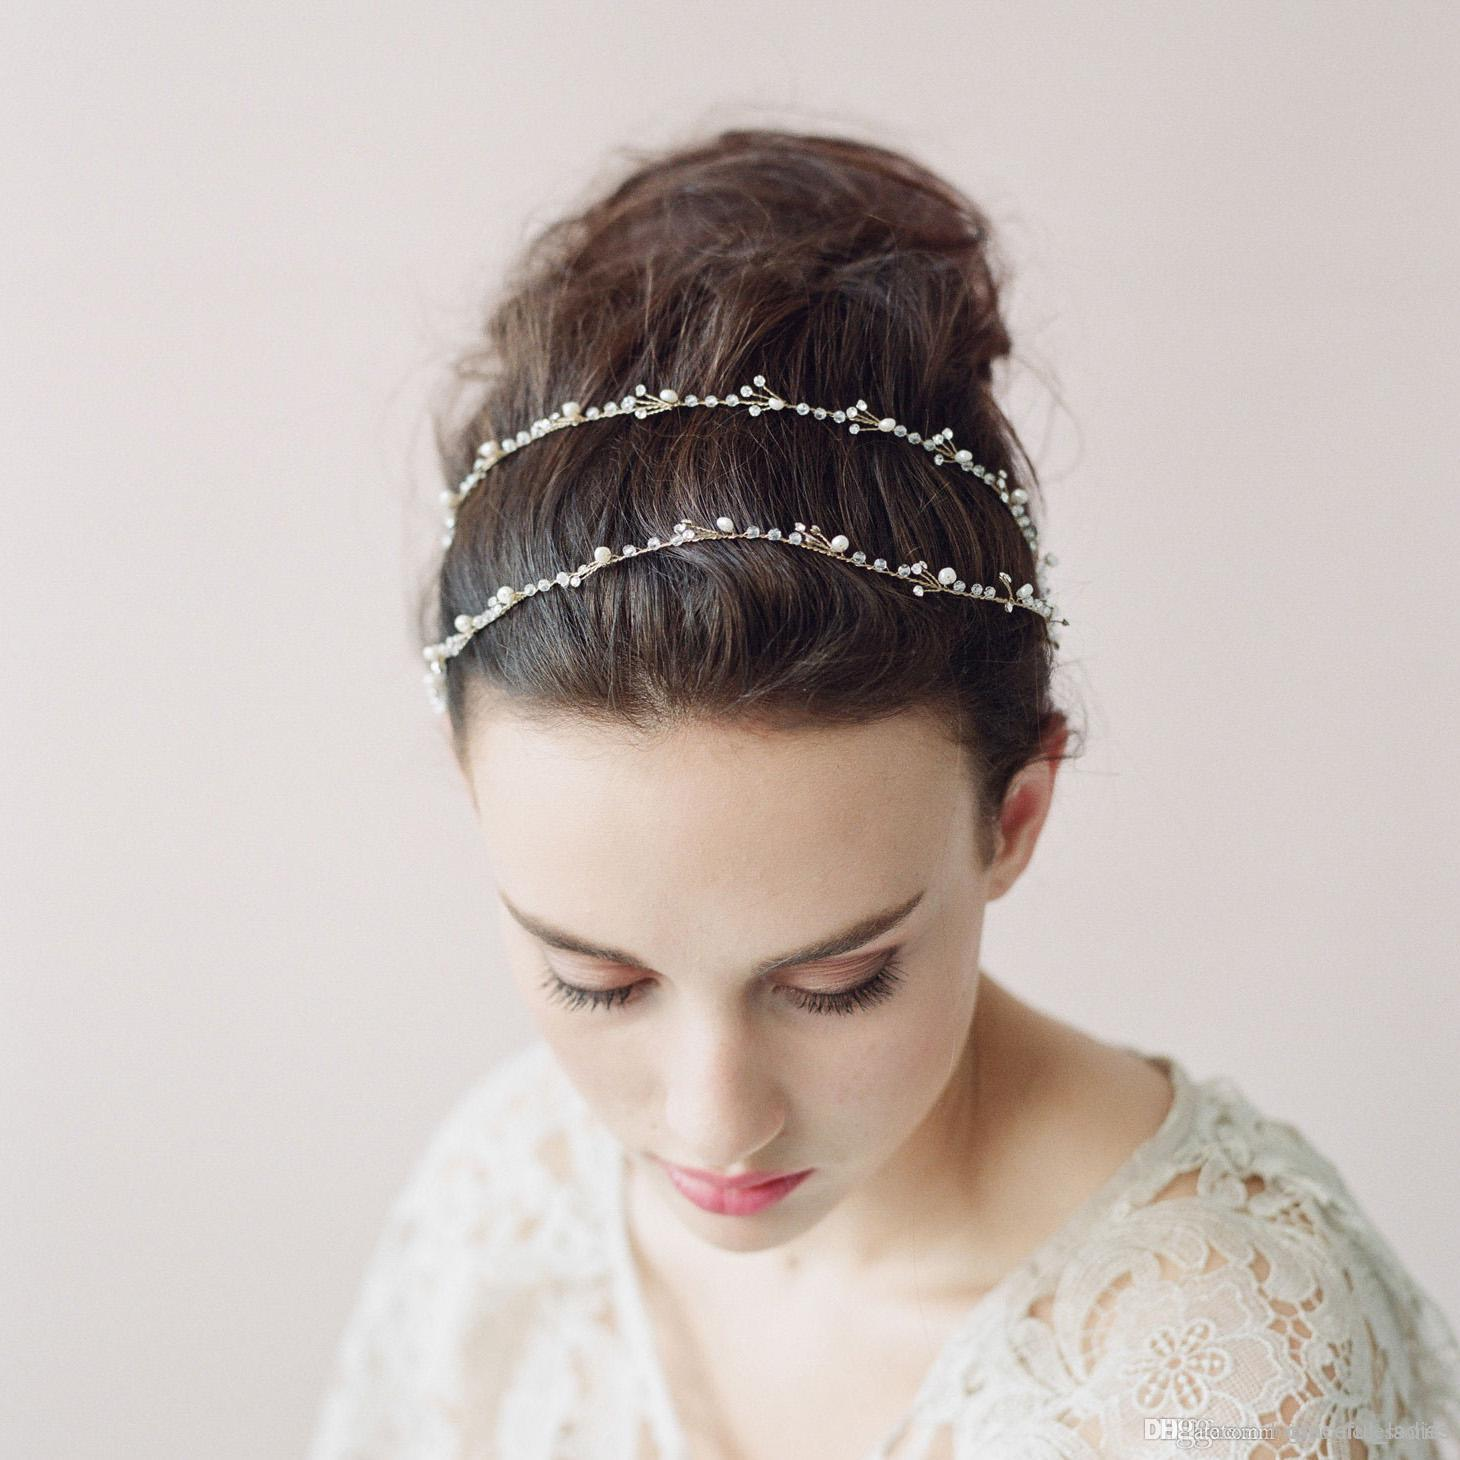 Bridal hair accessories for long hair - Delicate Extra Long Hair Vine Wedding Hair Pins Wedding Headbands Hair Accessories Headbands Headpieces For Weddings Bridal Accessories Bridal Sashes Bride